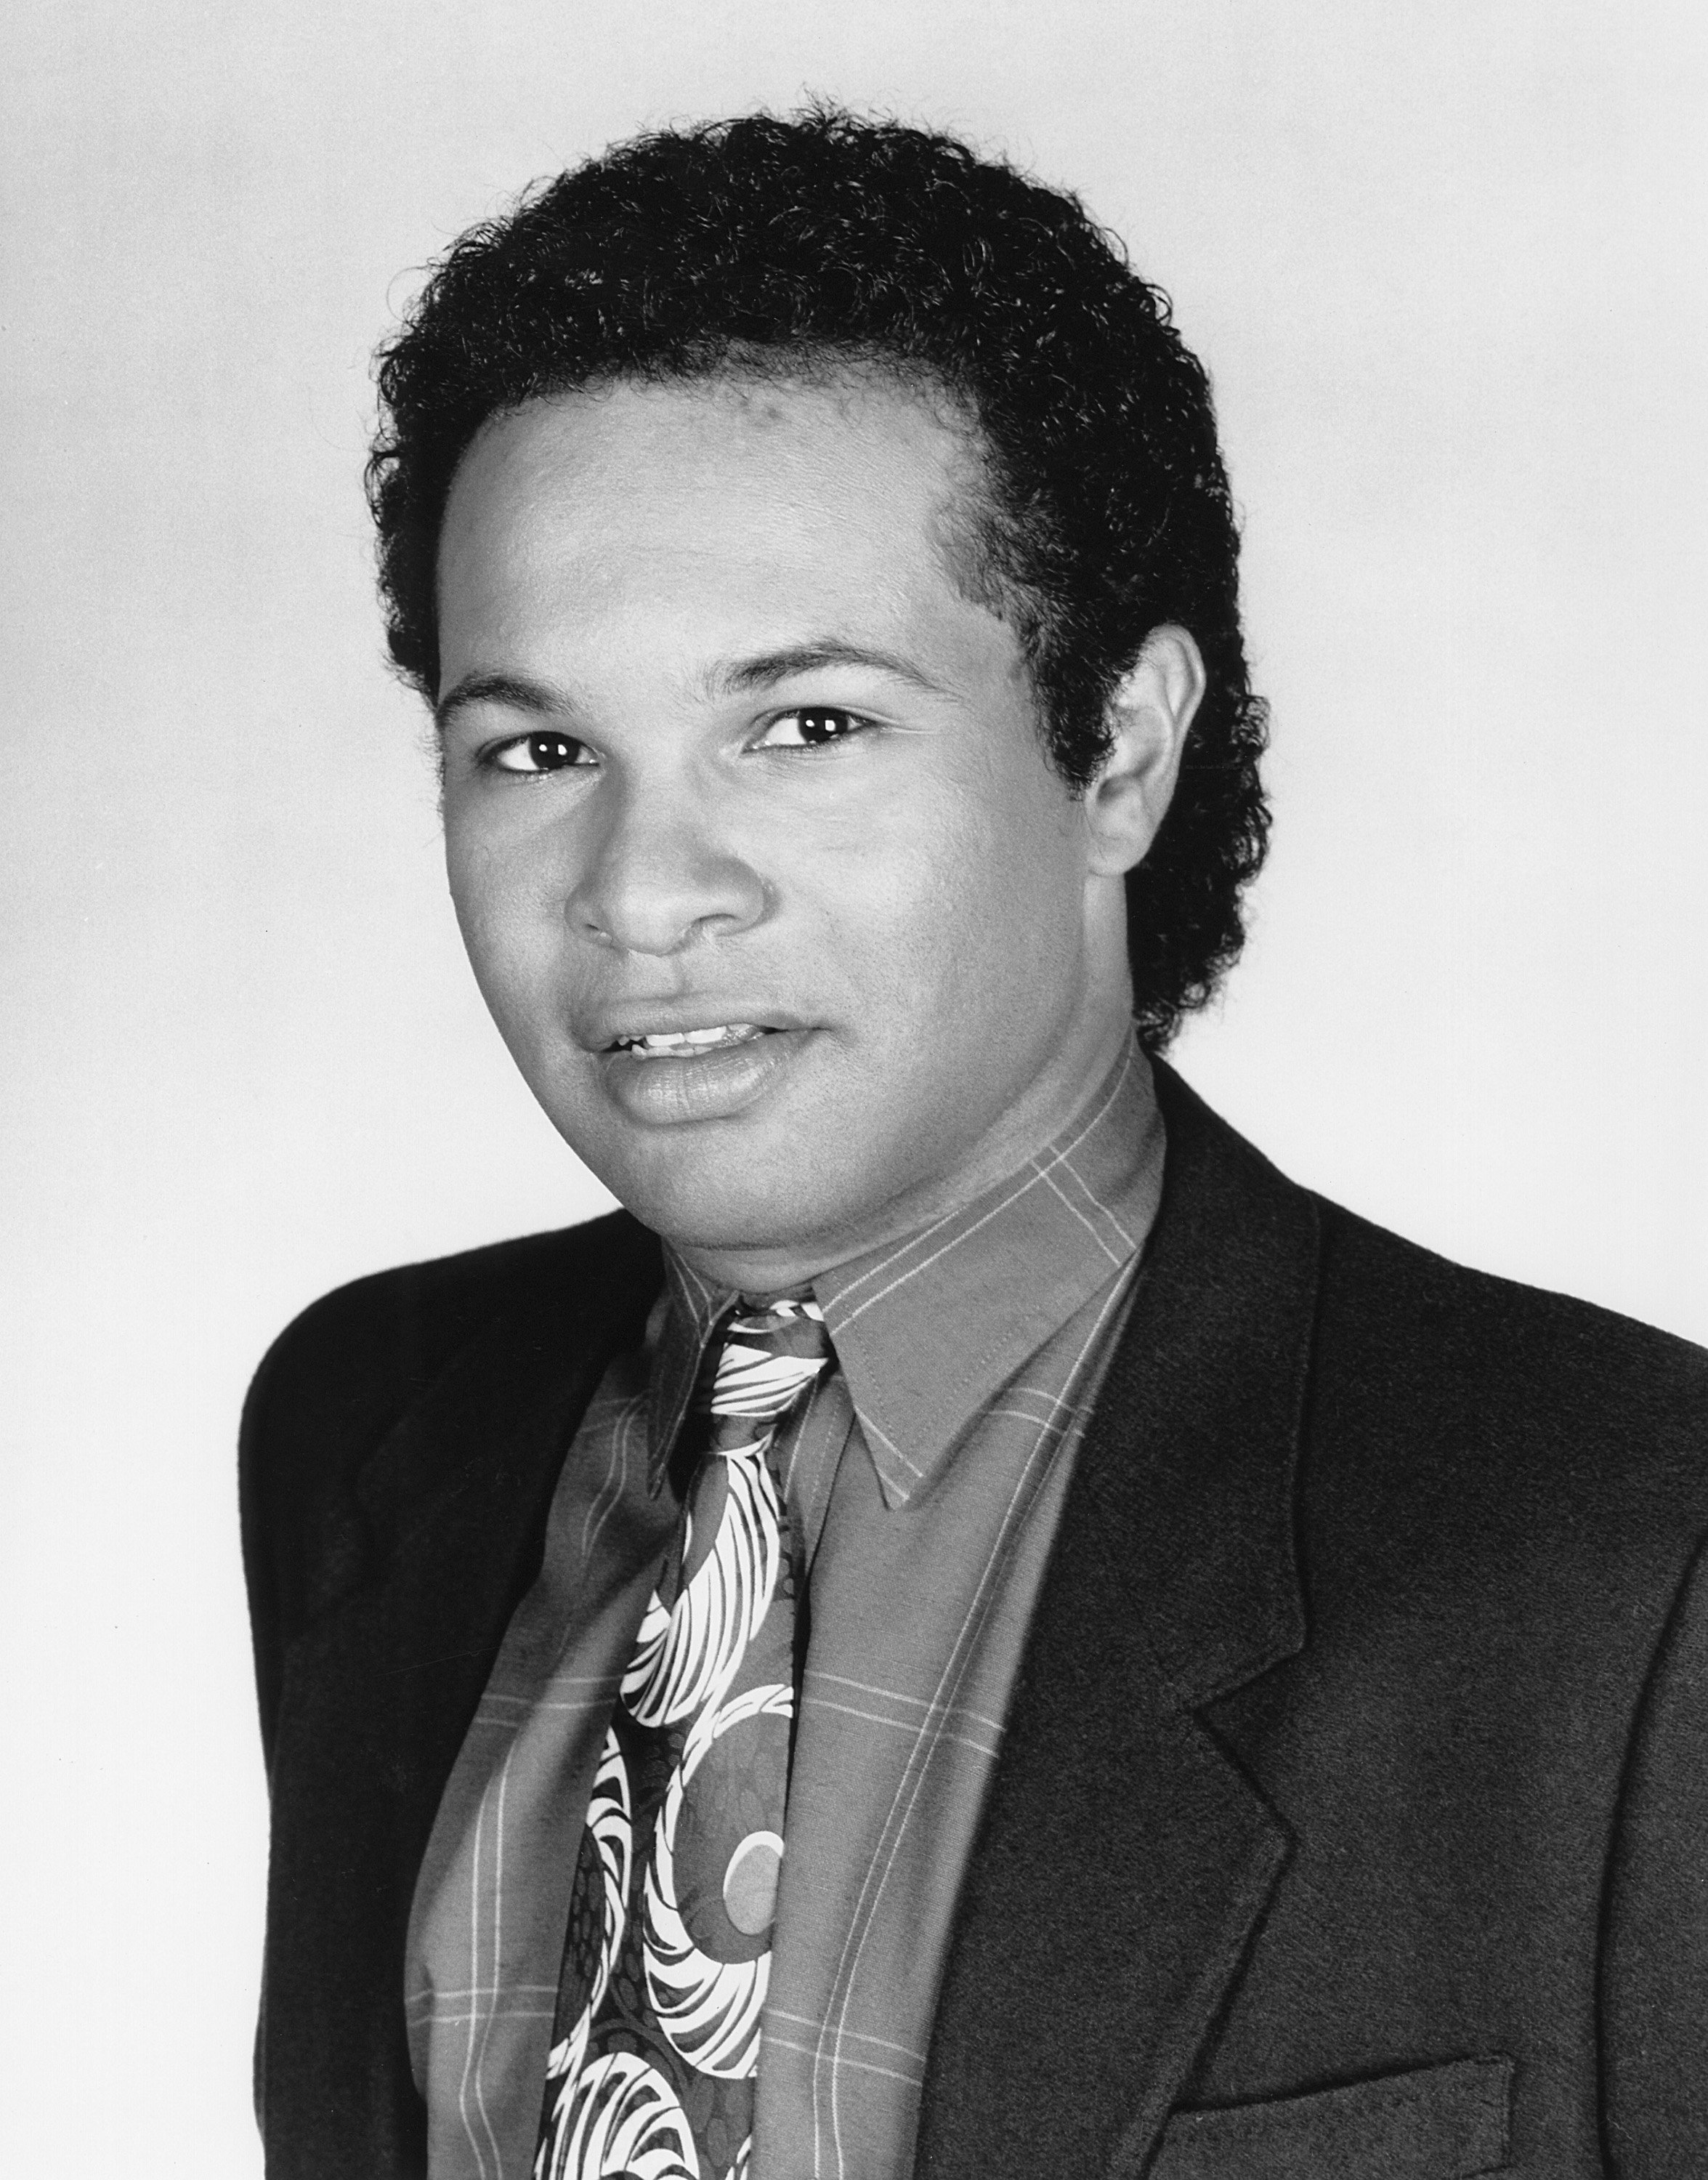 """Geoffrey Owens as Elvin Tibideaux on season 7 of """"The Cosby Show"""" 